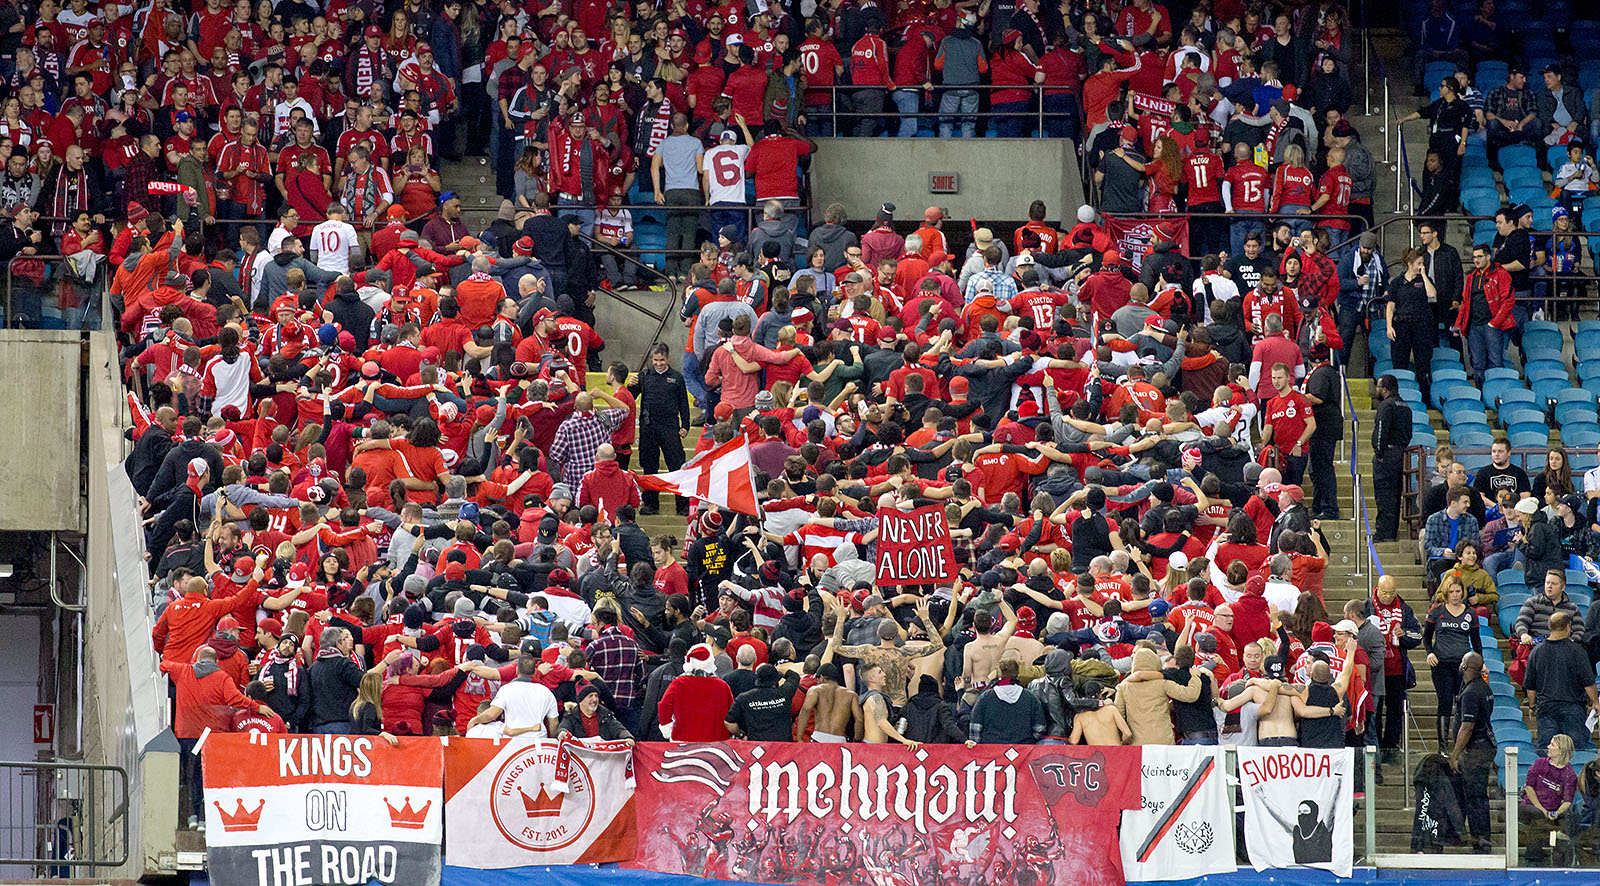 Toronto FC supporters make the trip out to support their team during the 2016 MLS Cup Playoffs. Image by Dennis Marciniak of denMAR Media.